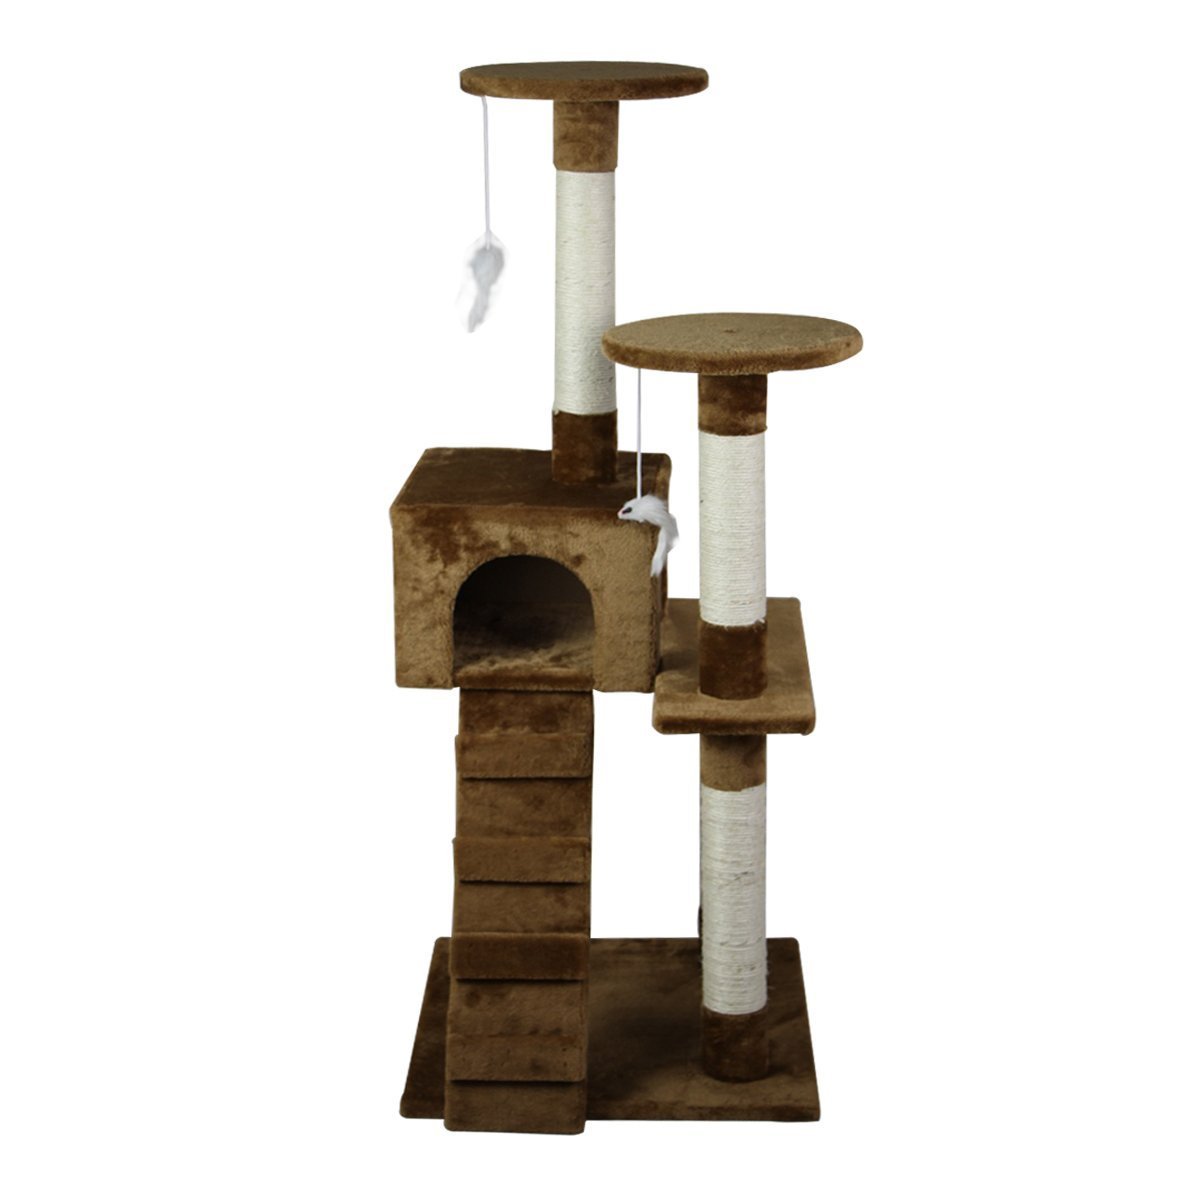 52-039-039-Cat-Tree-Multi-Level-Tower-Kitten-Condo-House-Activity-Center-Pet-Furniture thumbnail 13